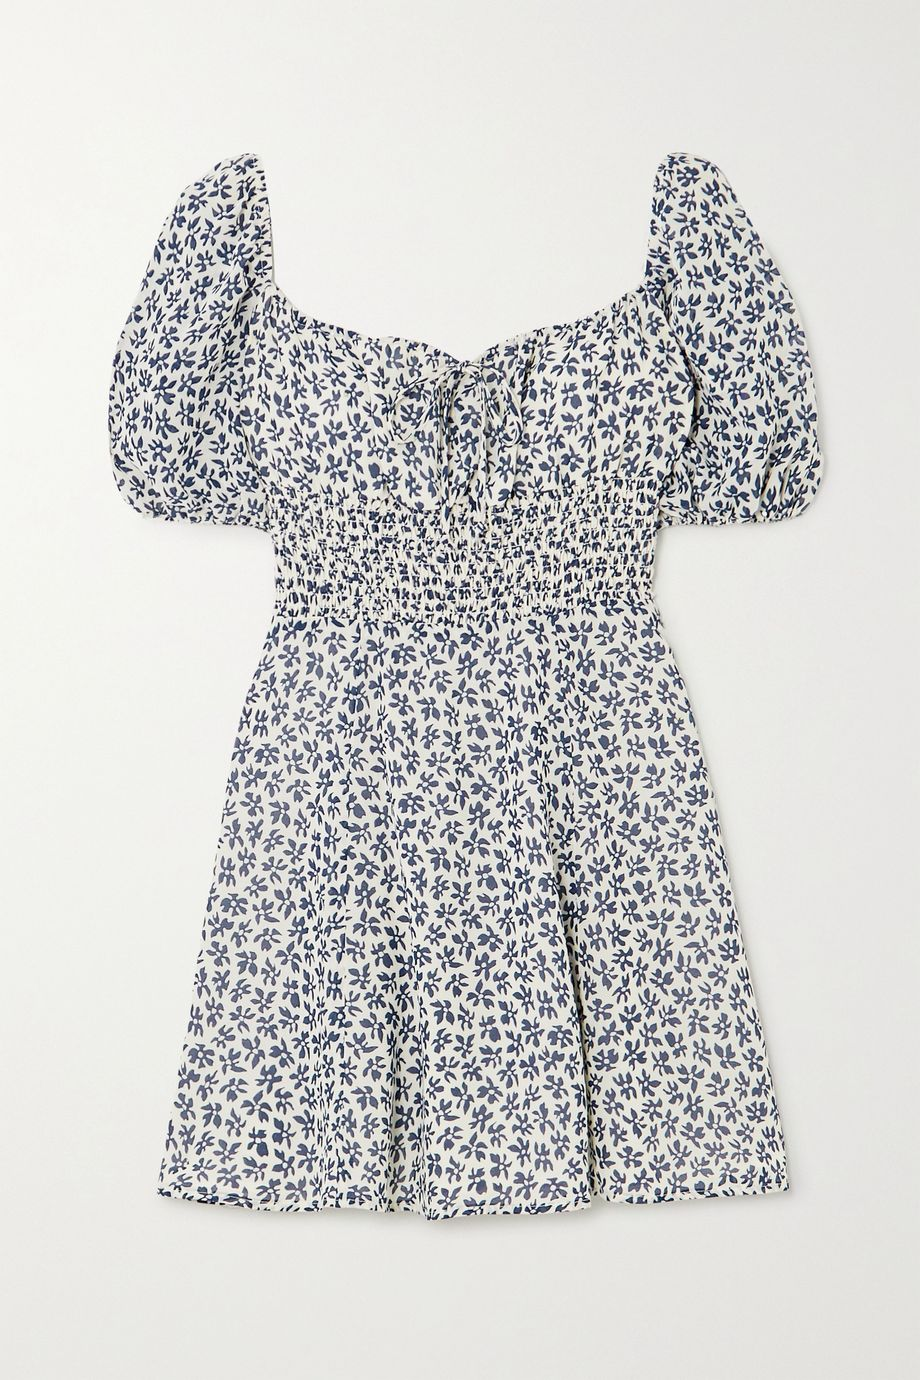 Reformation + NET SUSTAIN Jo shirred floral-print georgette mini dress